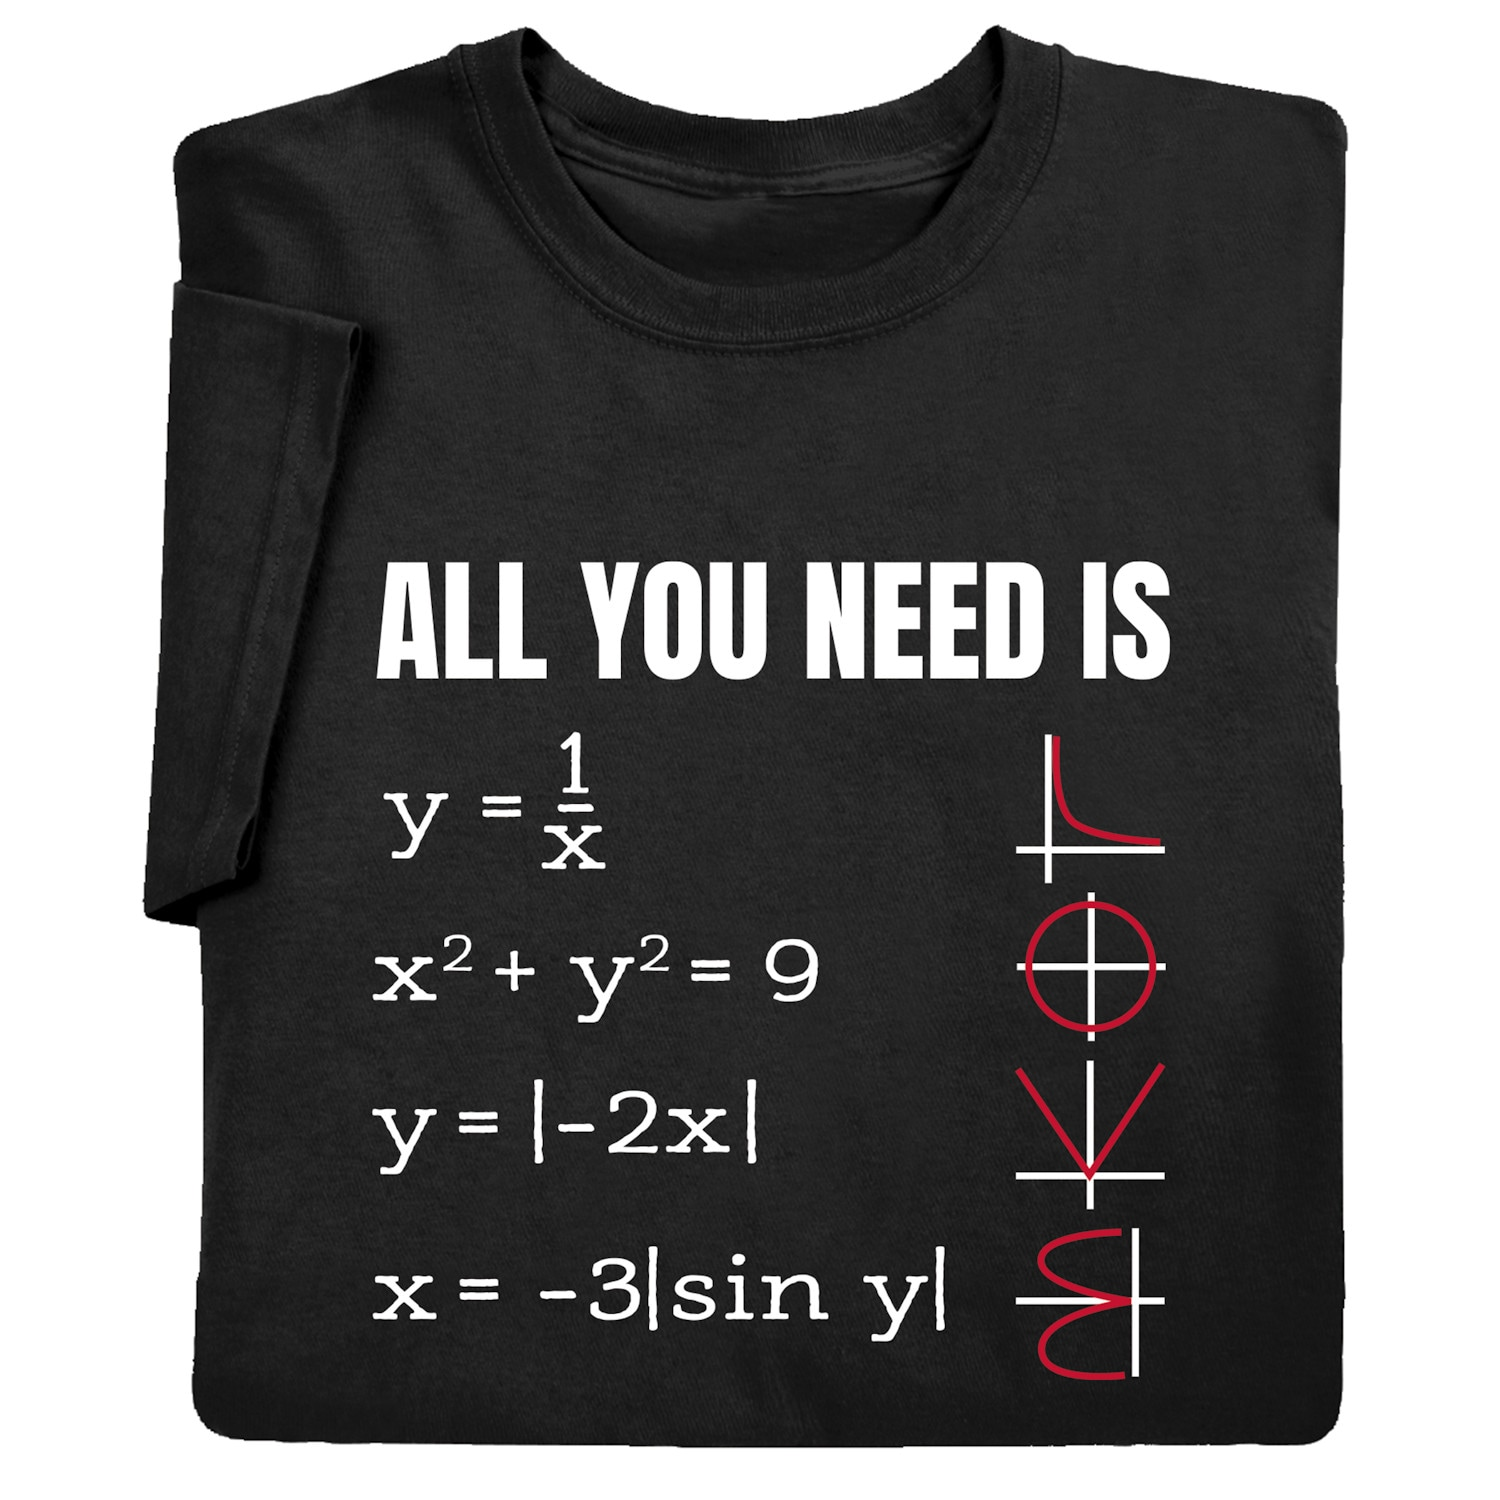 Black What on Earth Men/'s Math Functions Graph Sweatshirt All You Need Is Love